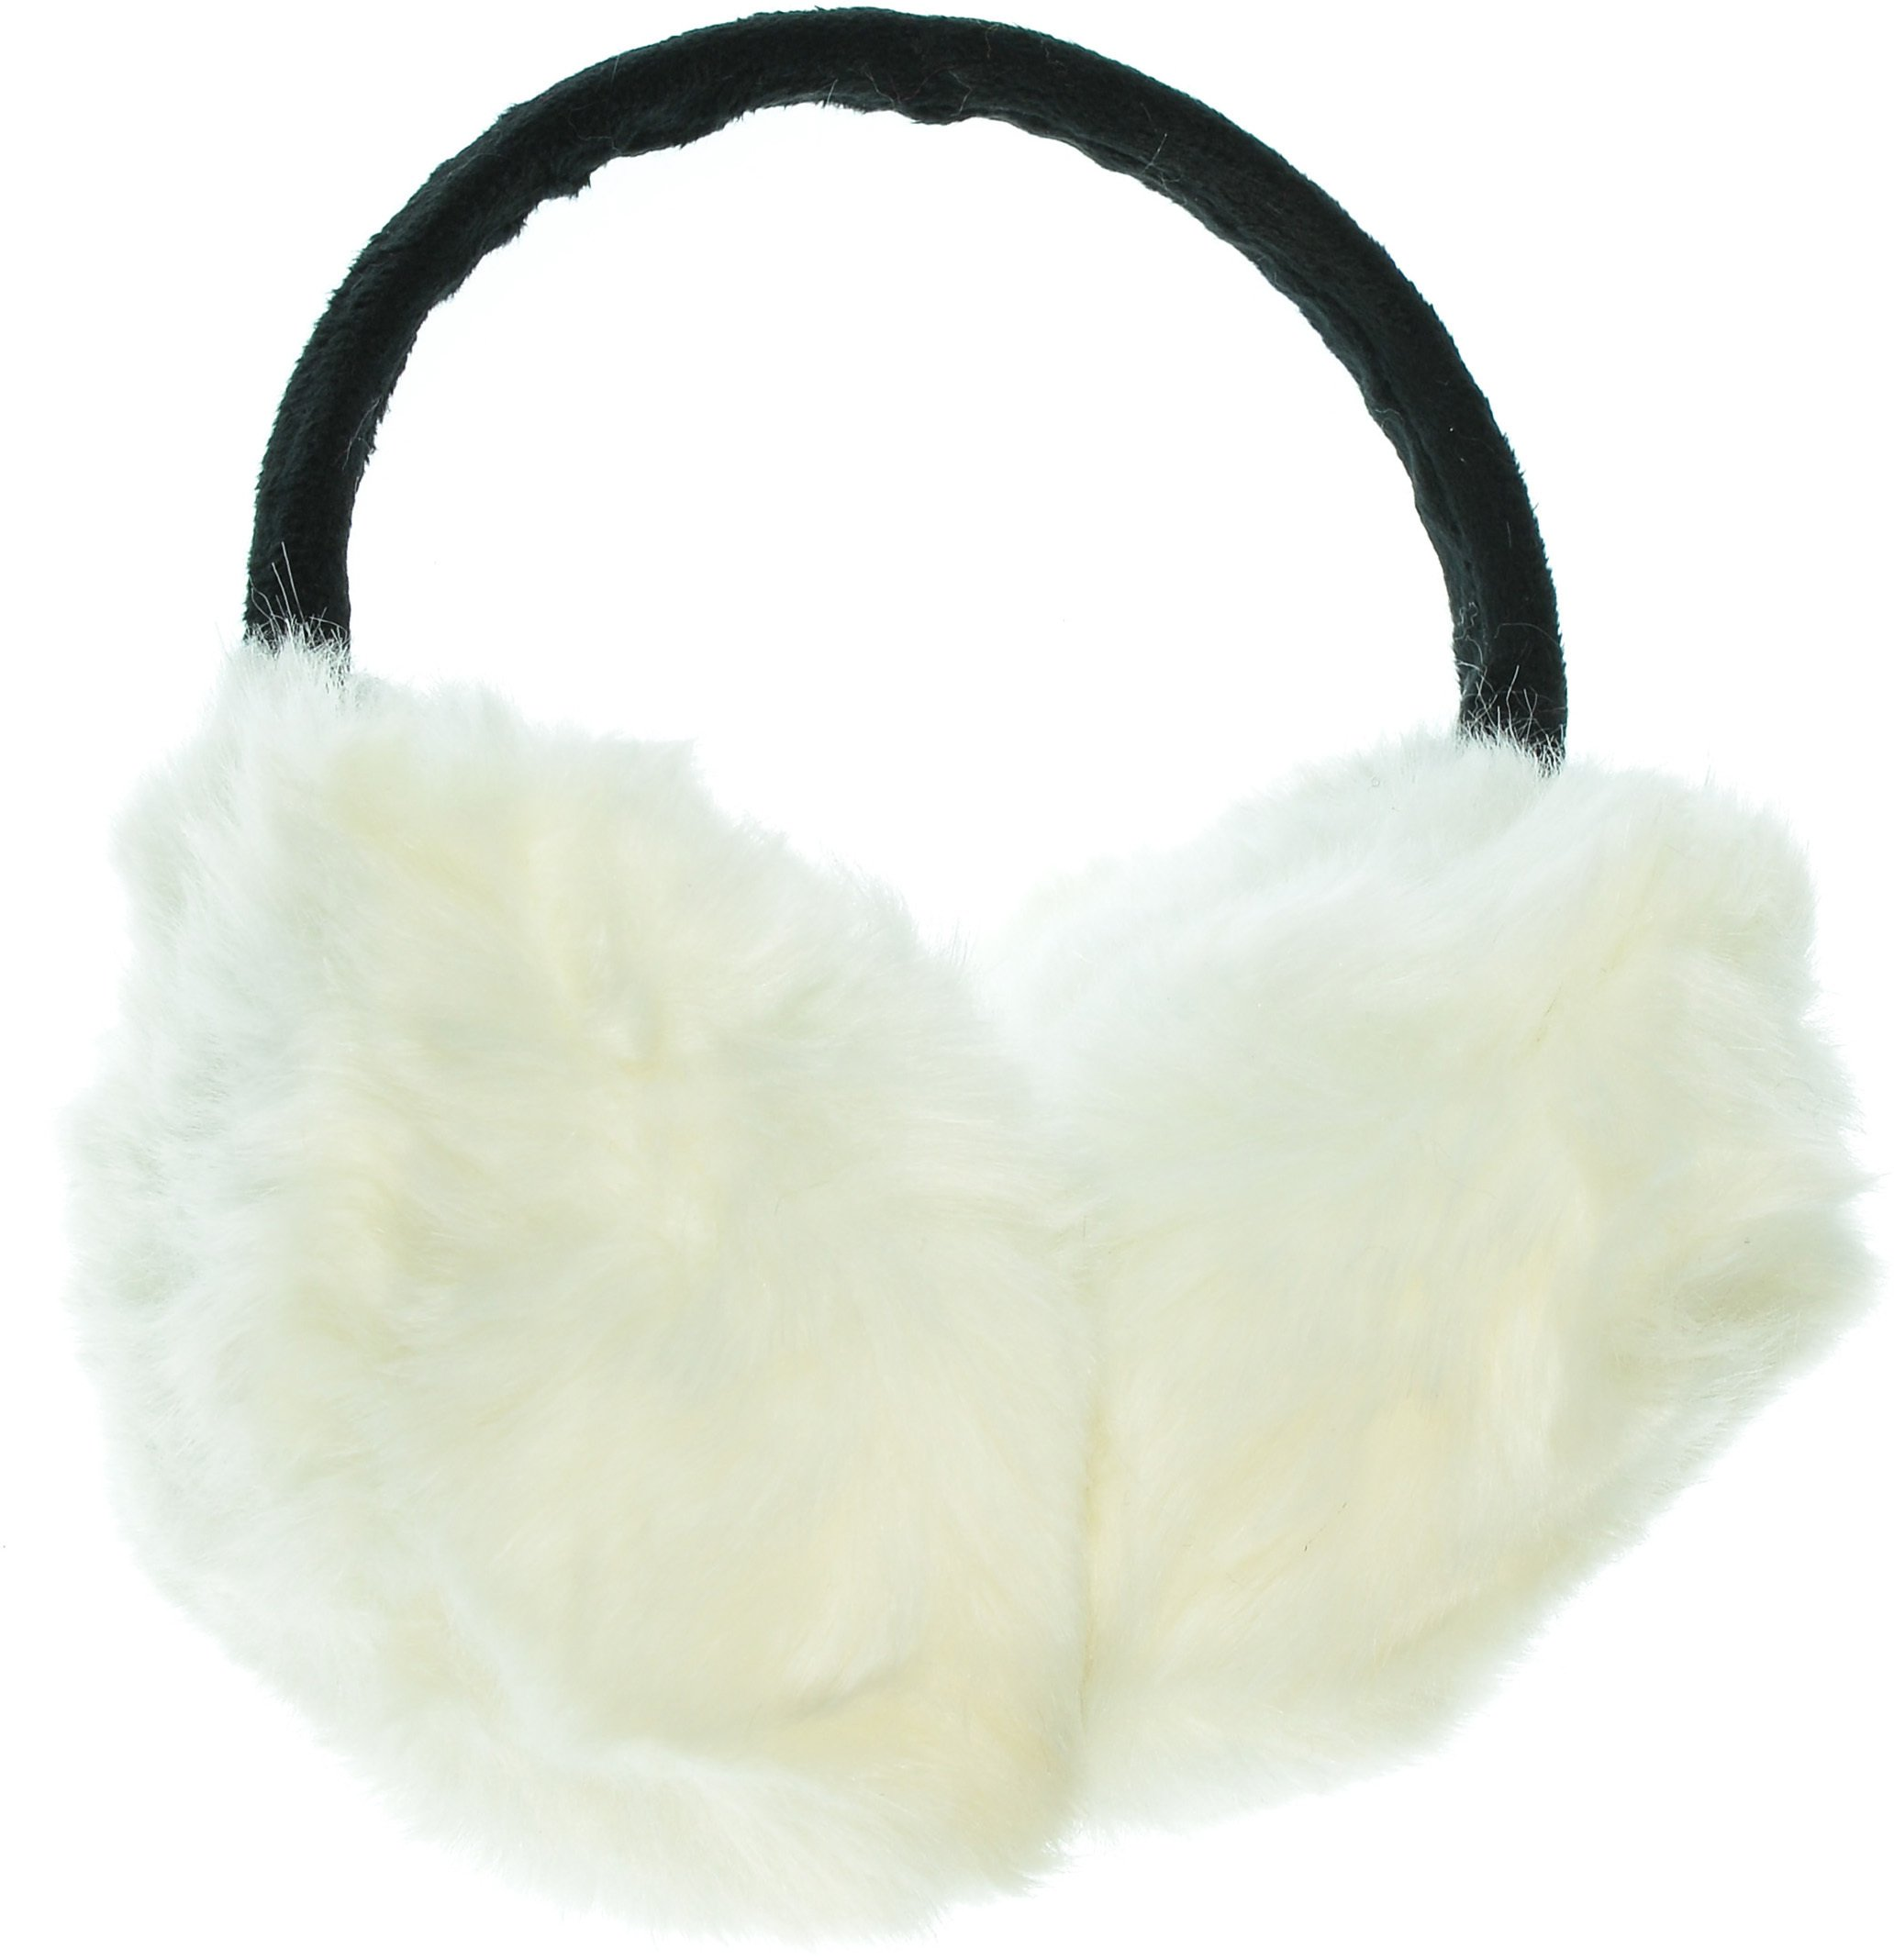 Hand By Hand Aprileo Unisex Earmuff Ear Warmer Fuzzy Faux Fur Warmth Run Bigger [White.](One Size)